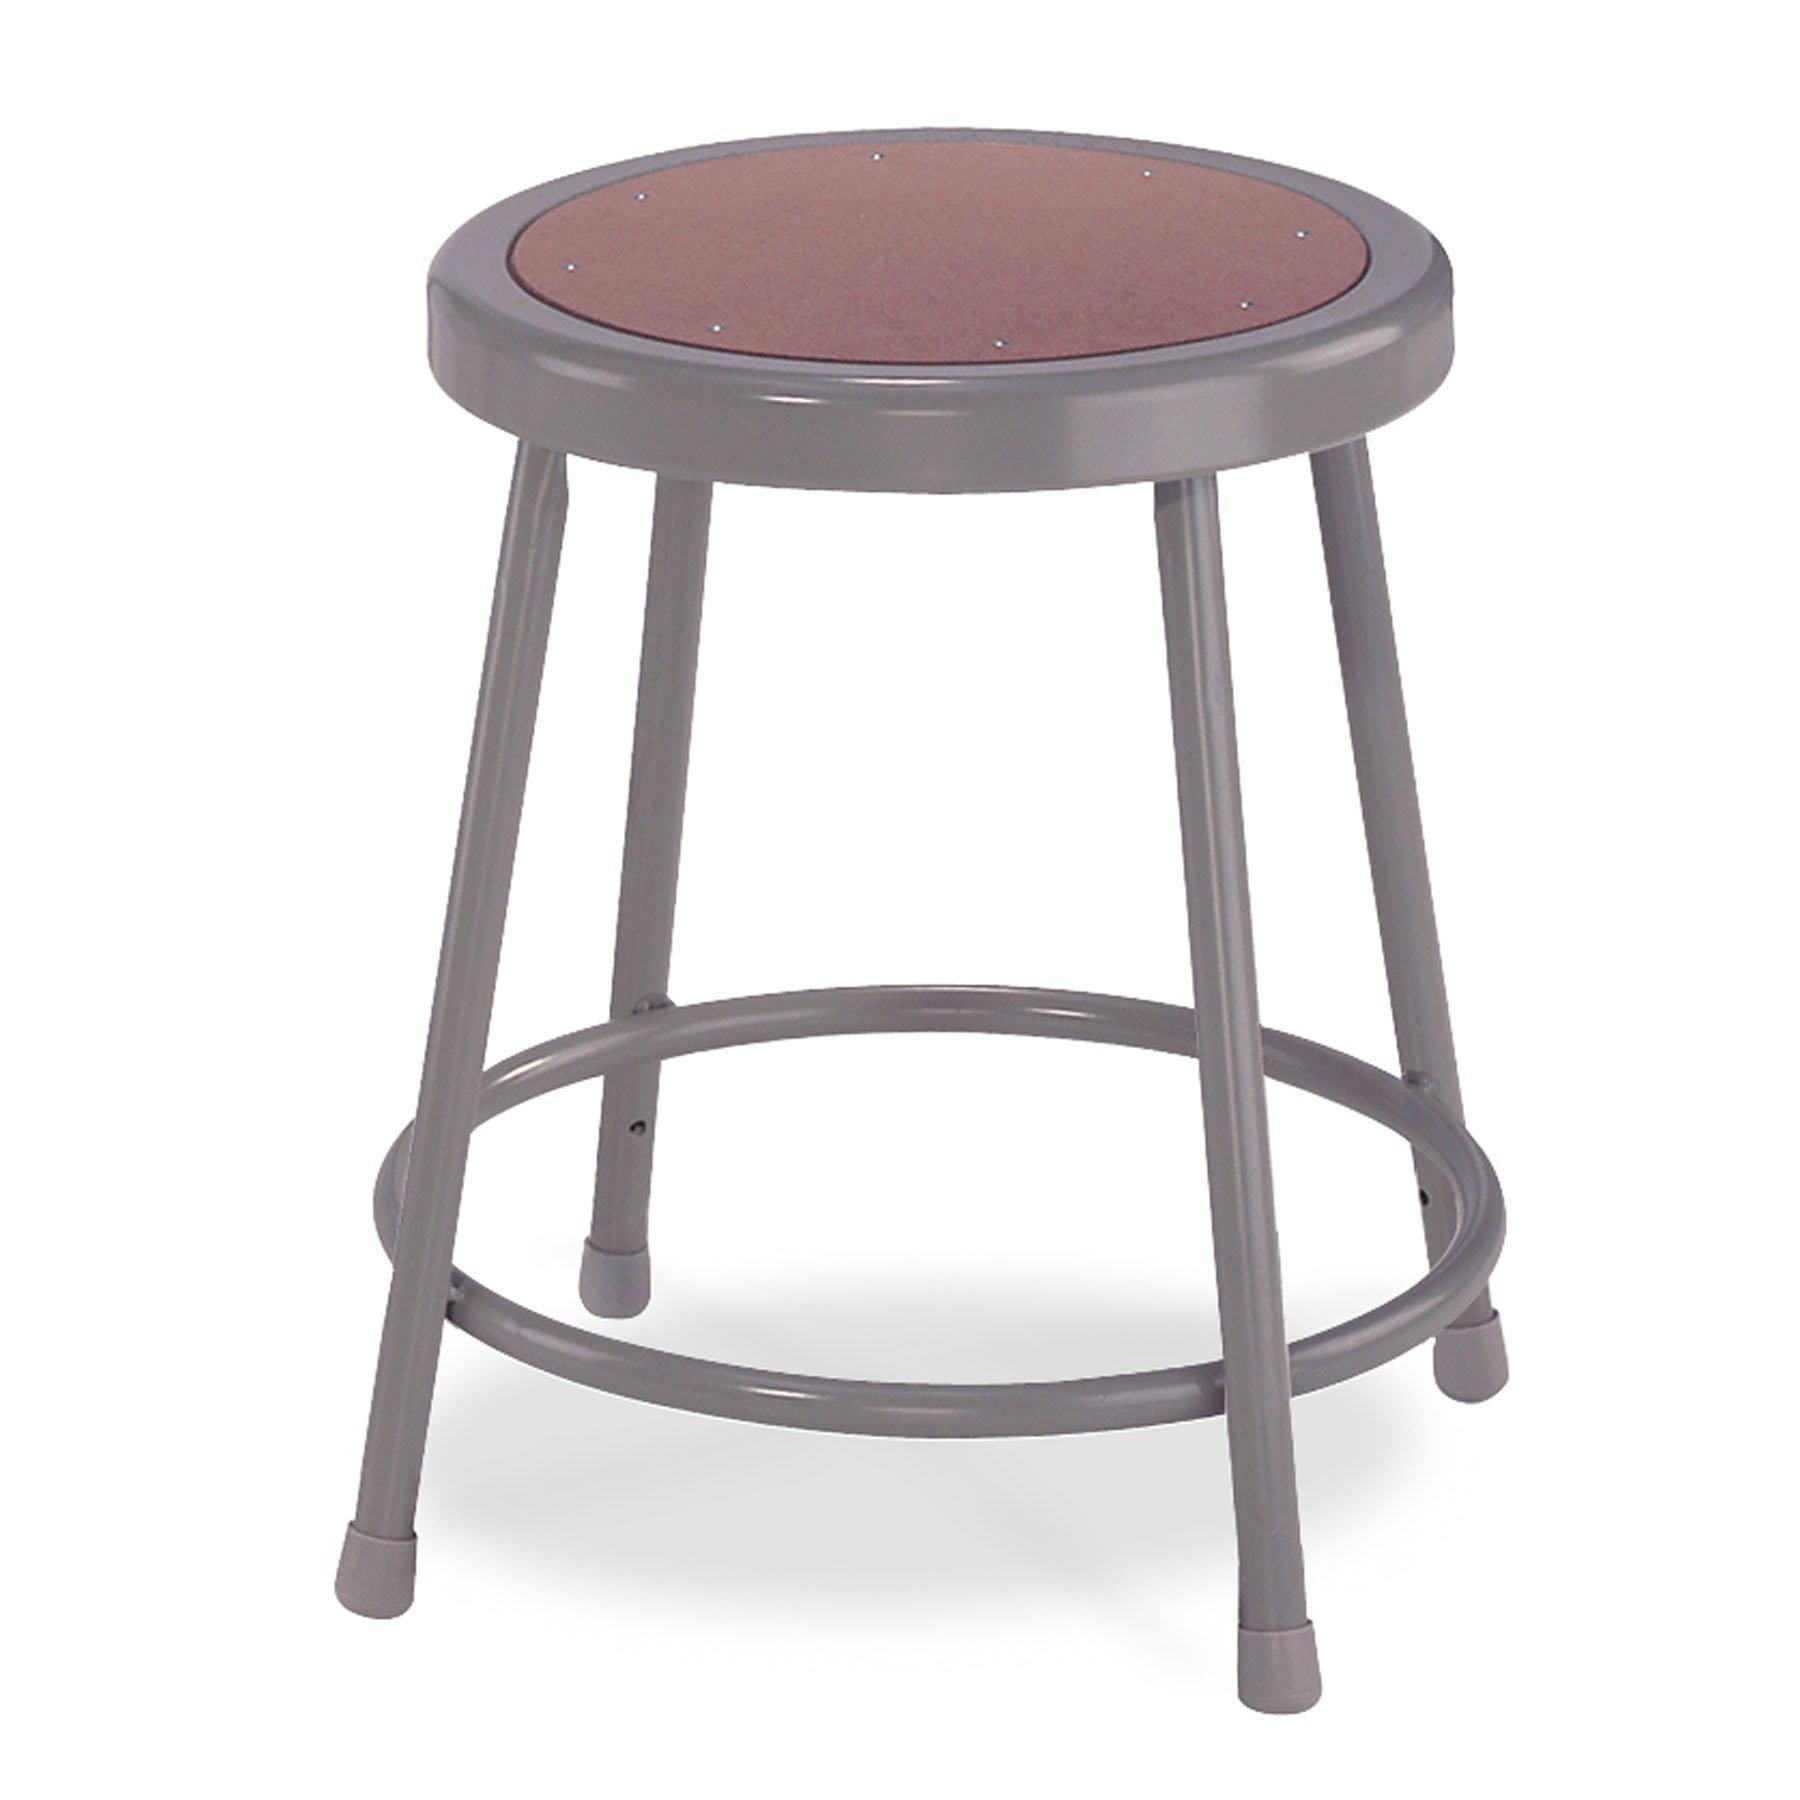 Heavy Duty Steel Stool